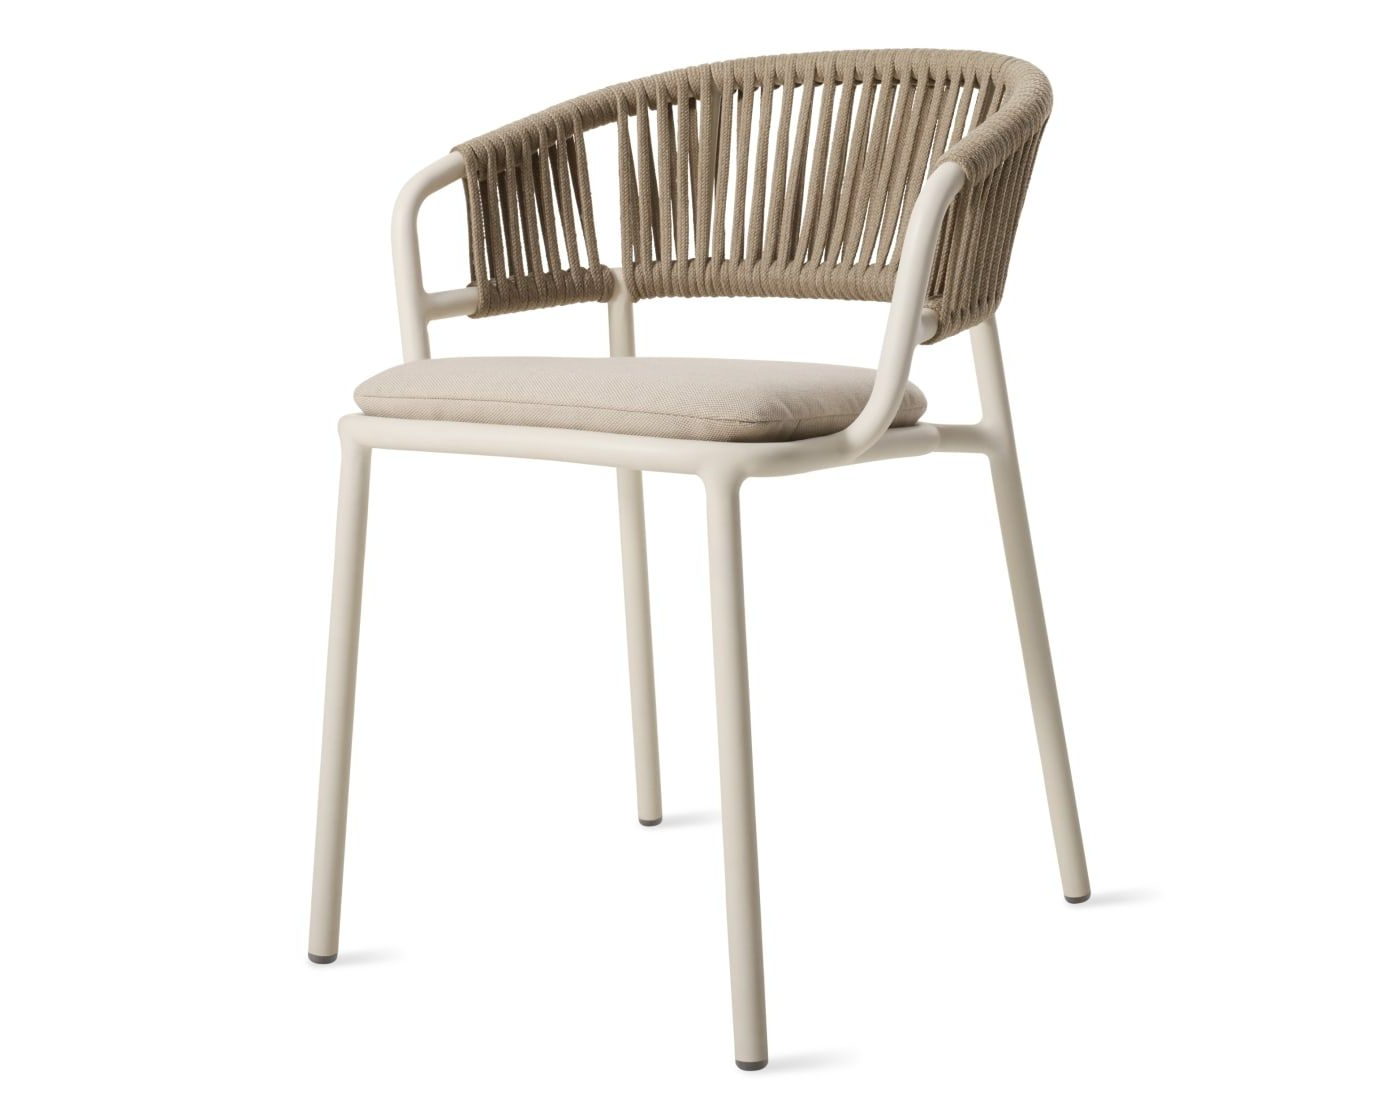 Pin On Outdoor Furniture With Regard To Well Known Danny Barrel Chairs (set Of 2) (View 18 of 20)